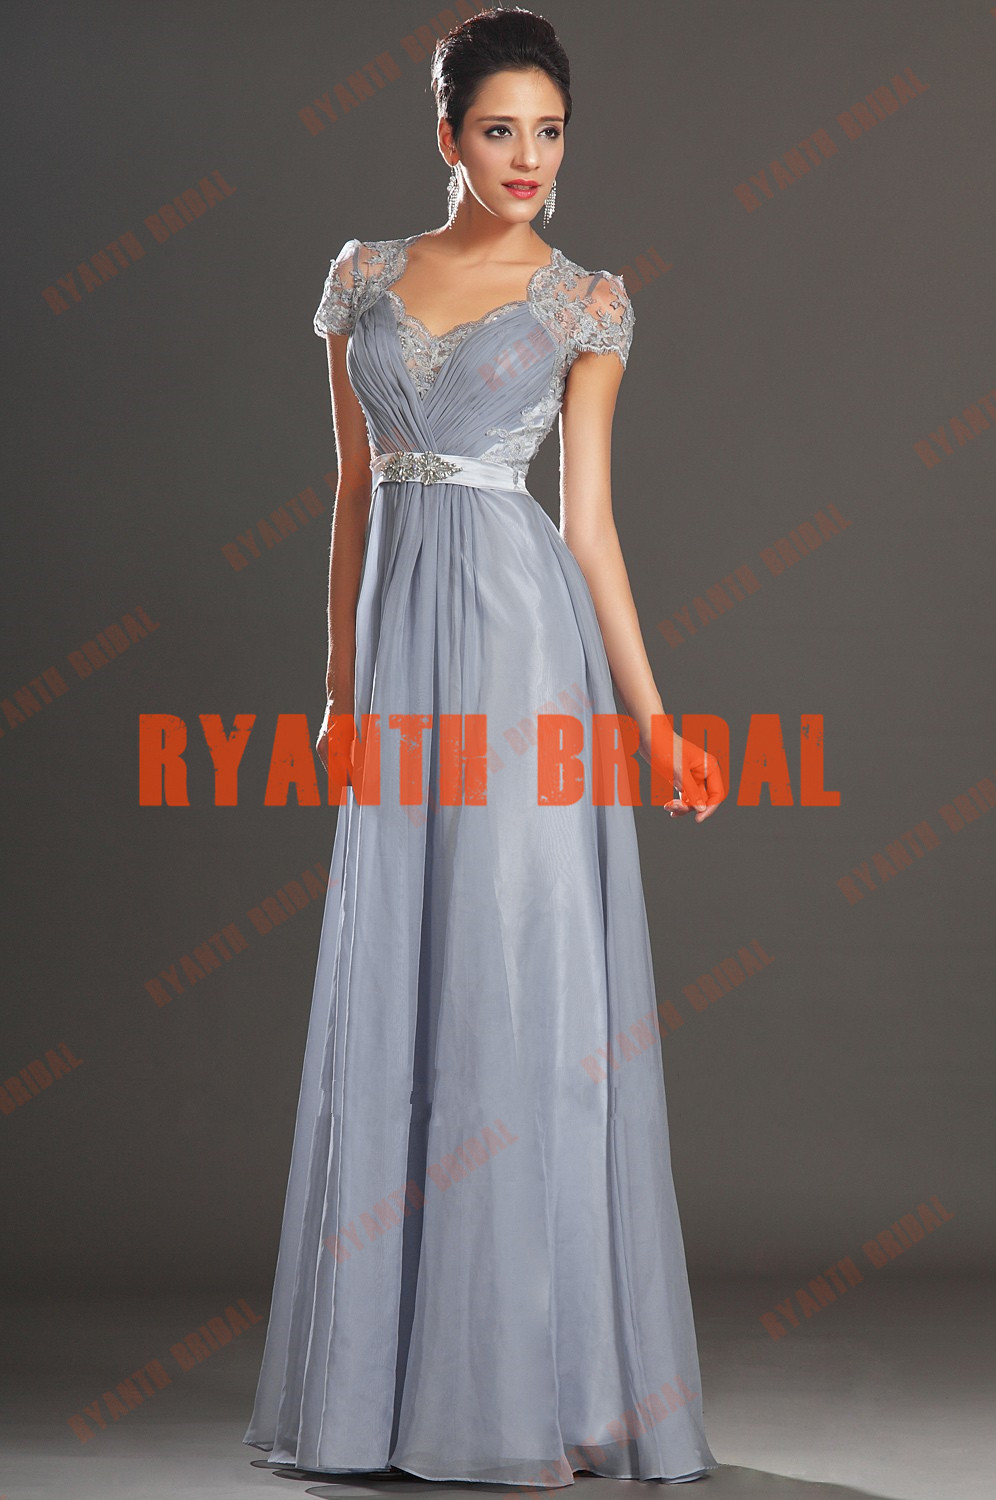 Evening dresses uk cheap lilac dress sewing patterns designer evening dresses uk cheap lilac dress sewing patterns designer formal red a line floor length built in bra appliques n 2015 cheap in evening dresses from ombrellifo Gallery